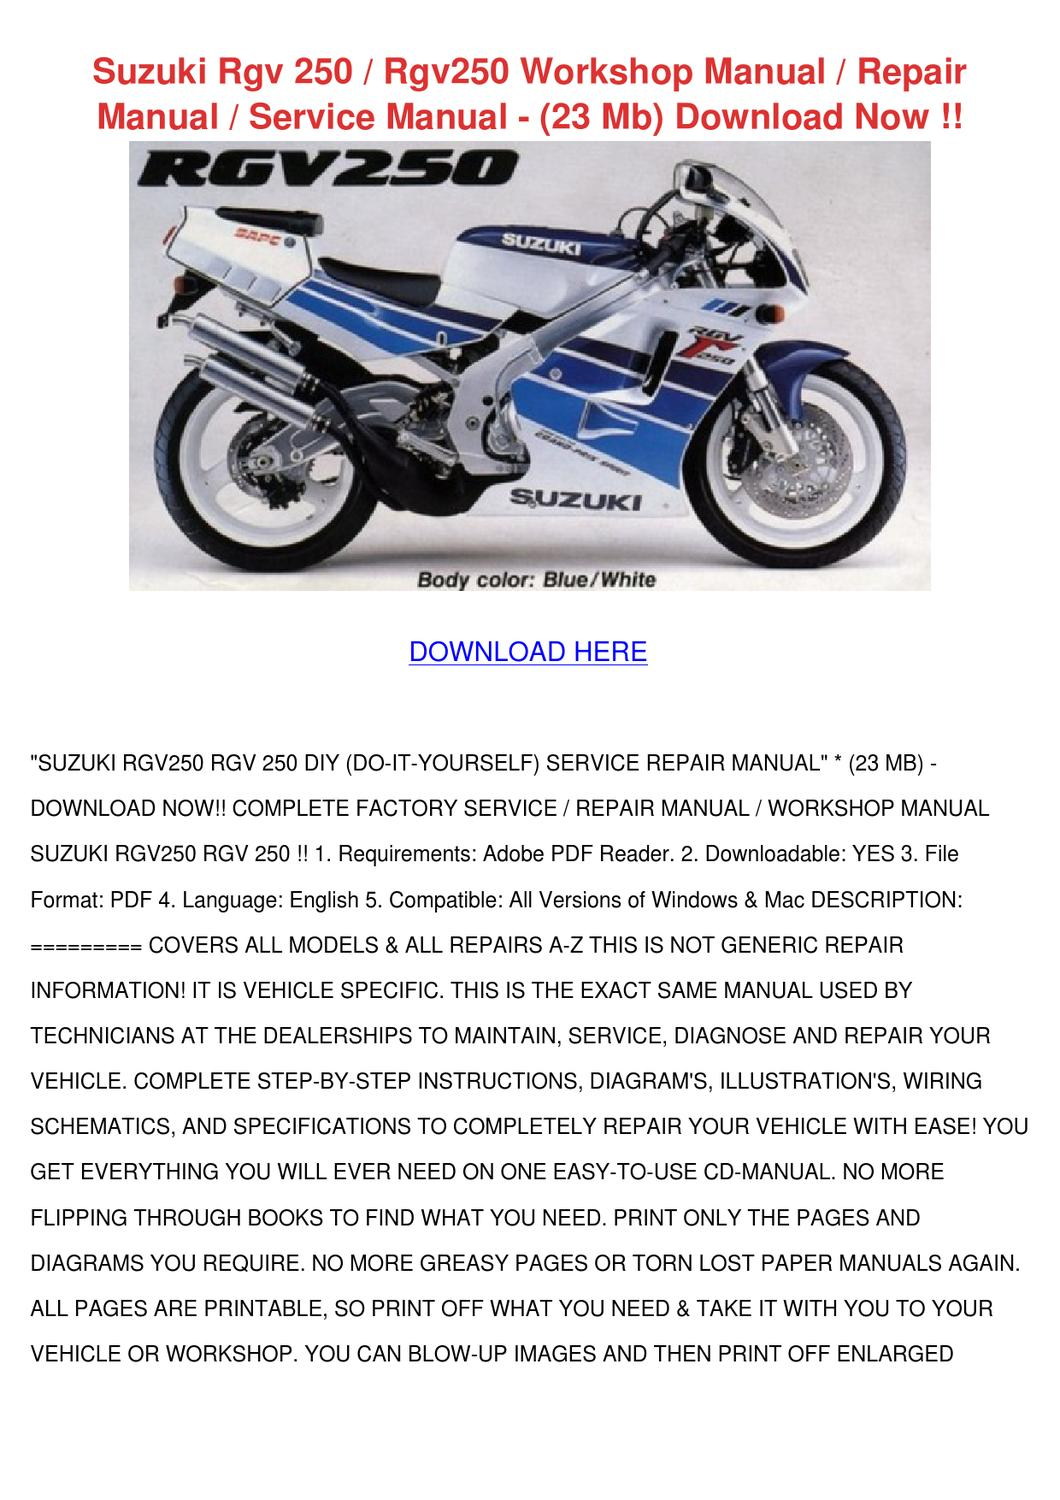 Suzuki rgv 250 rgv250 workshop manual repair by sherell tomala issuu fandeluxe Image collections